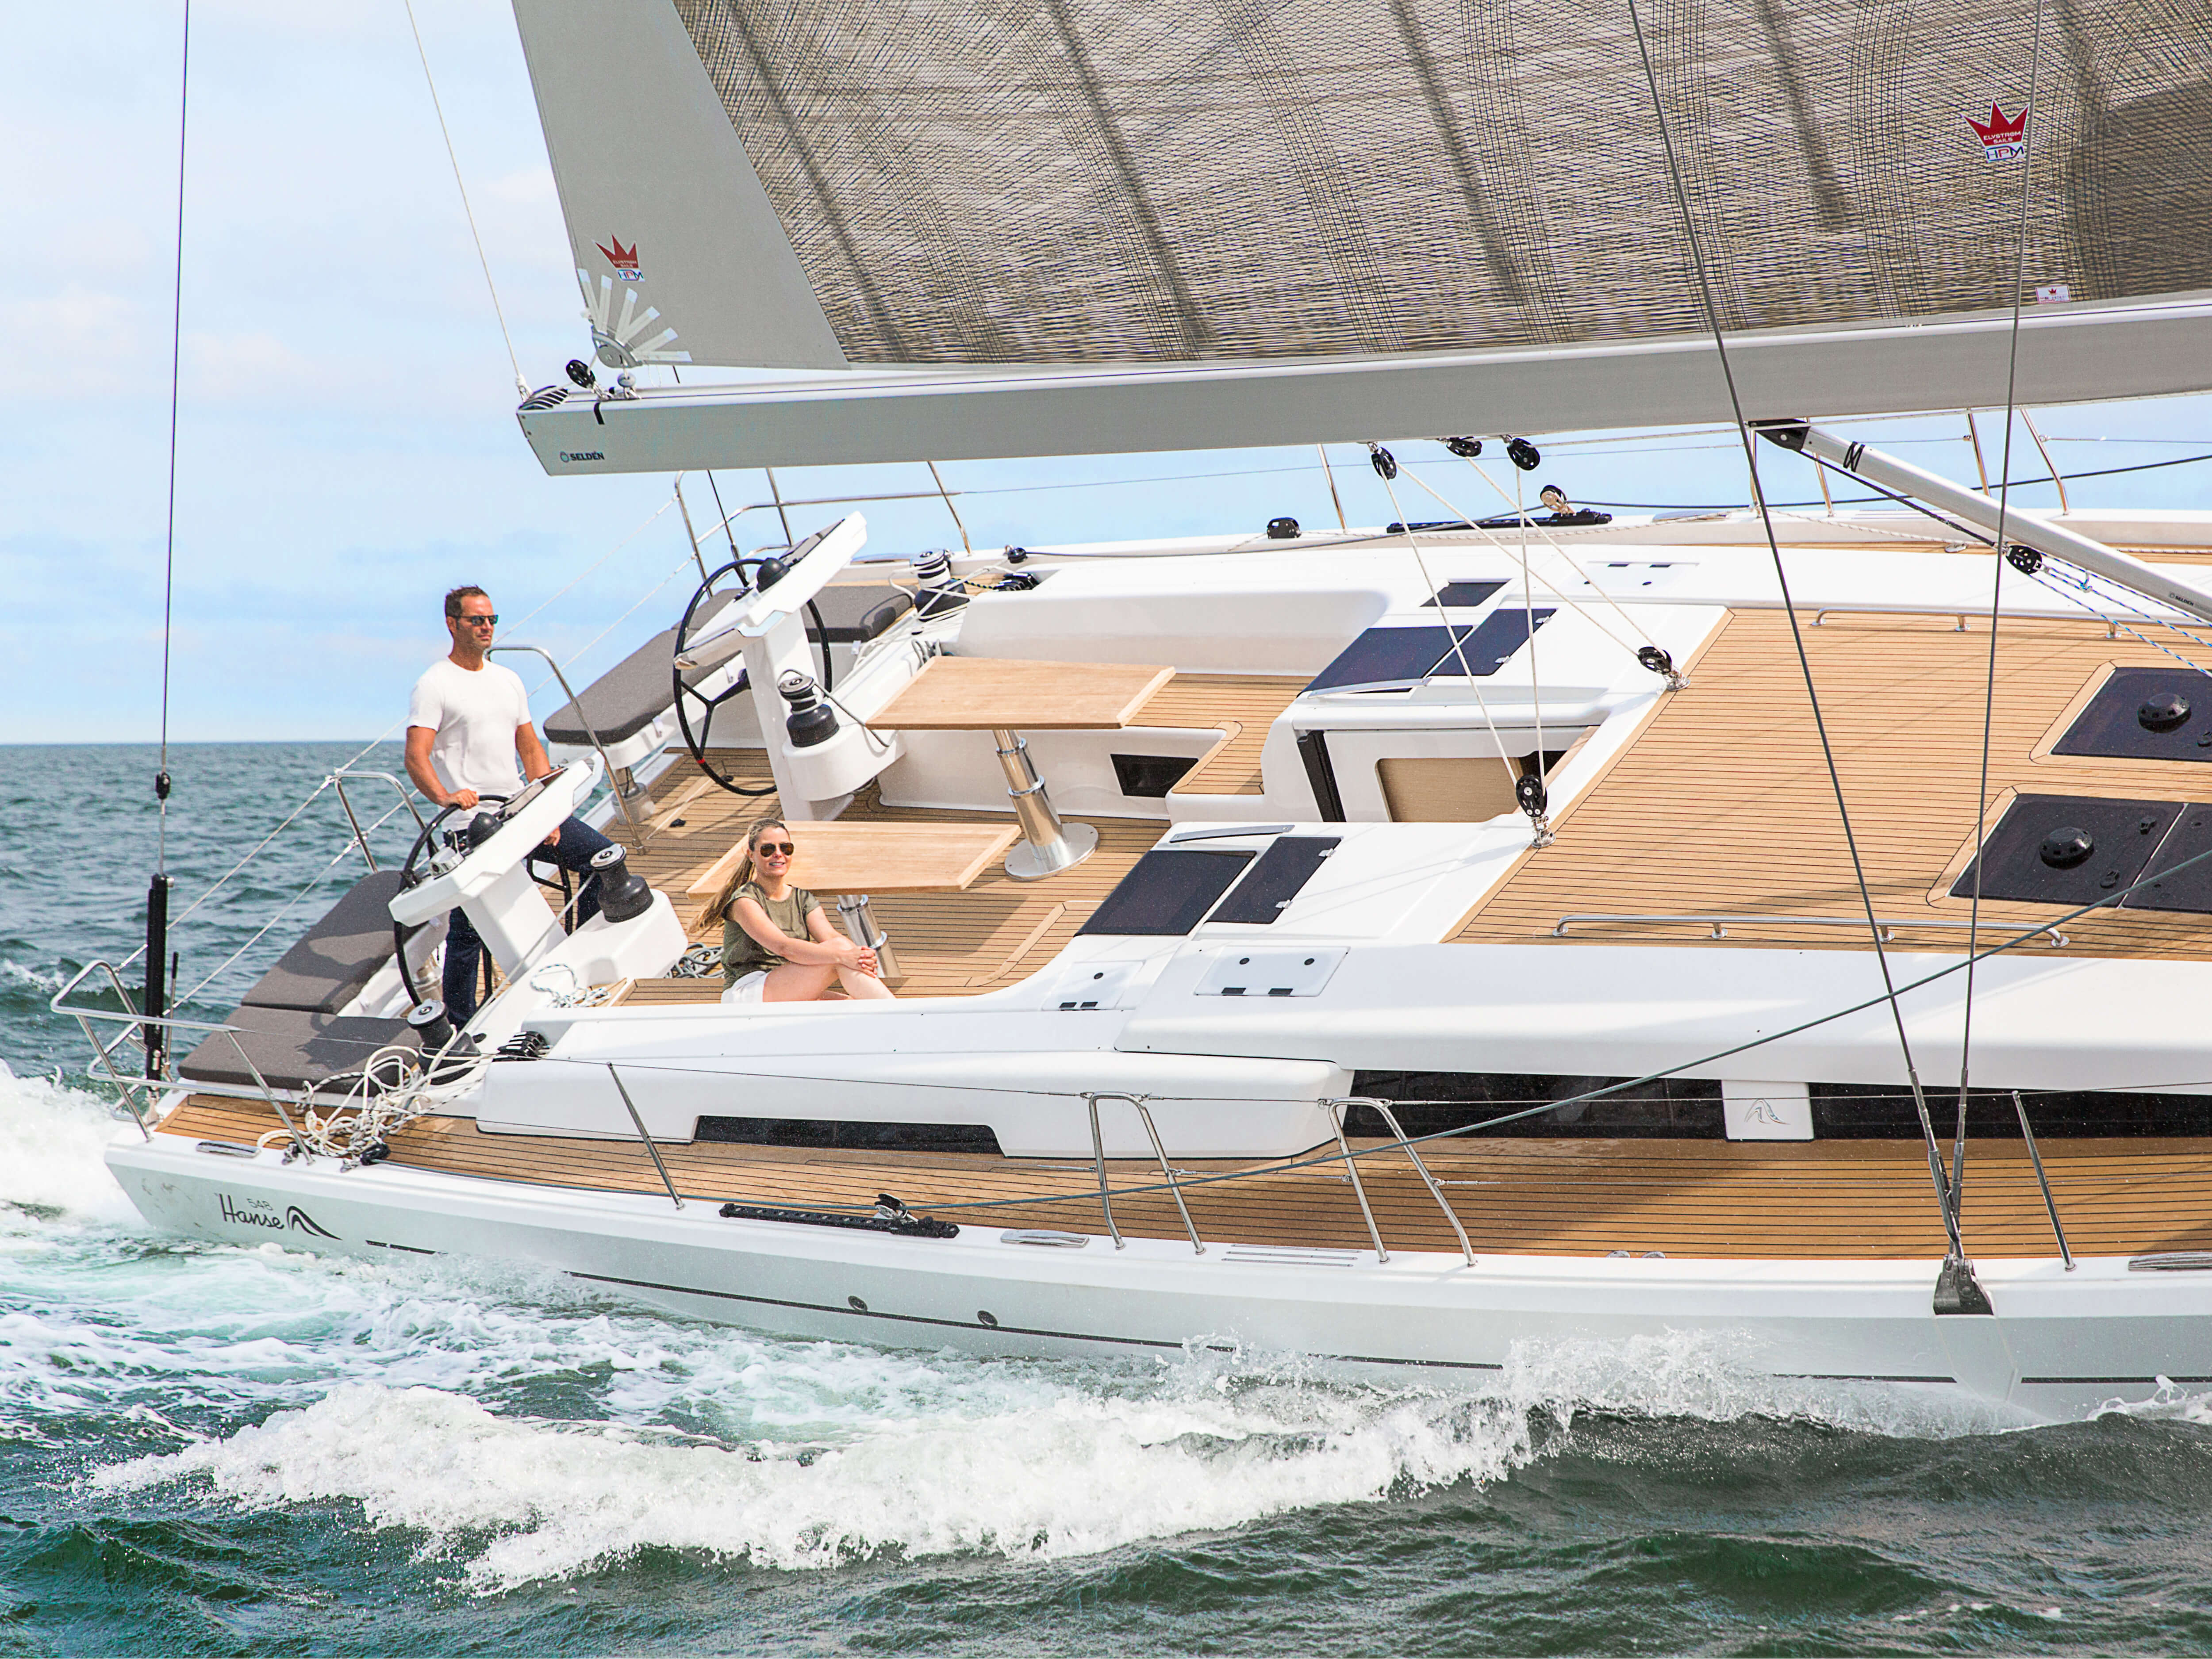 Hanse 548 | HANSE yachts amaze with their modern, functional design. Unique, puristic elegance meets exceptional performance from the pen of judel/vrolijk & co, the world's best and most experienced yacht designers. | Hanse